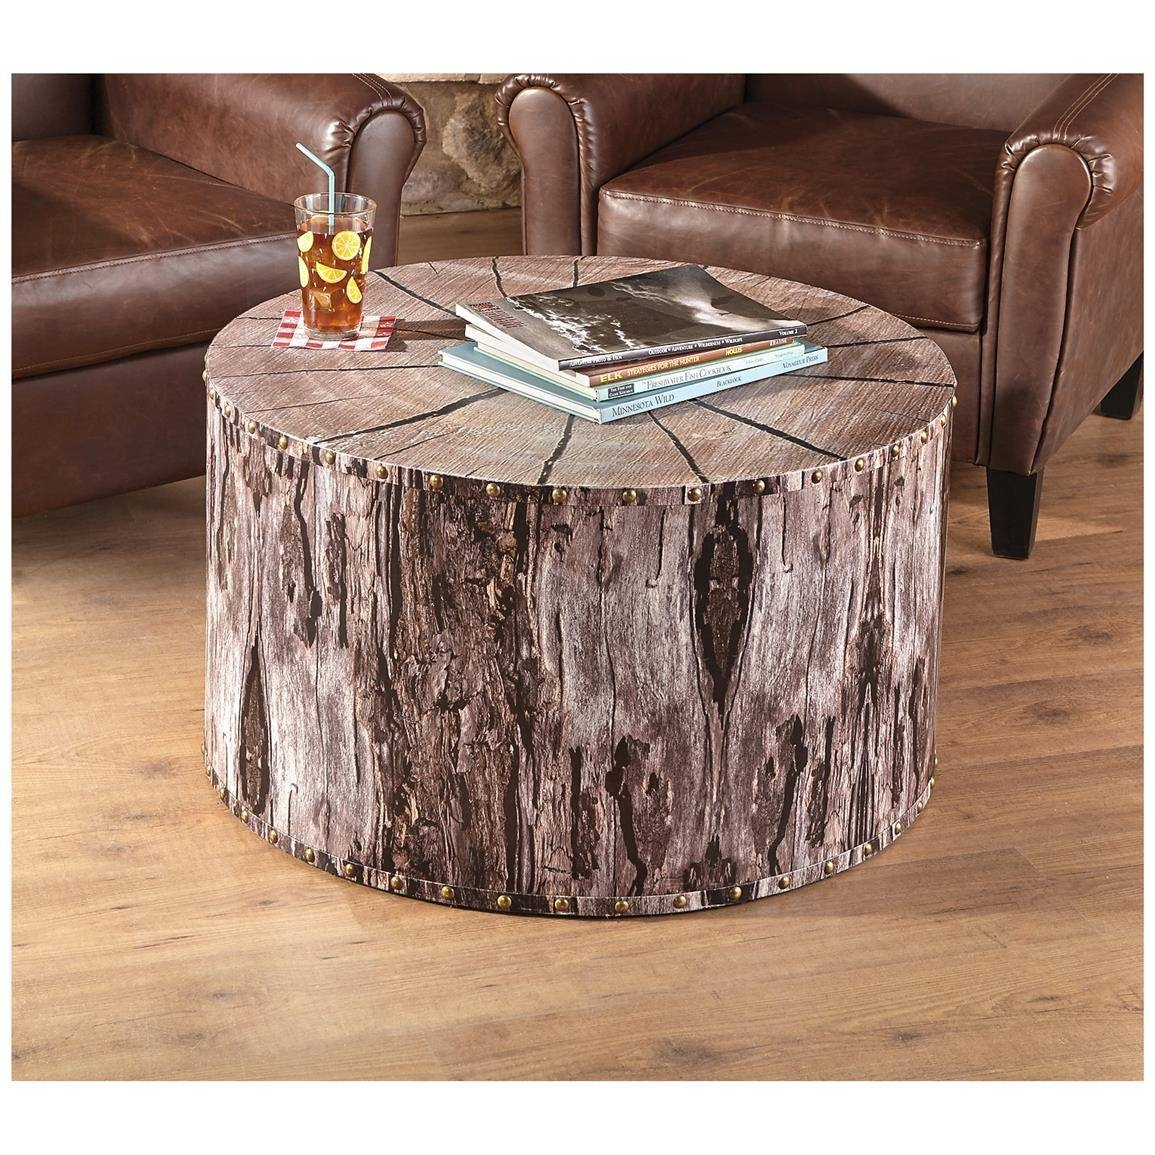 Castlecreek Tree Trunk Coffee Table - 664330, Living Room At throughout Tree Trunk Coffee Table (Image 3 of 15)